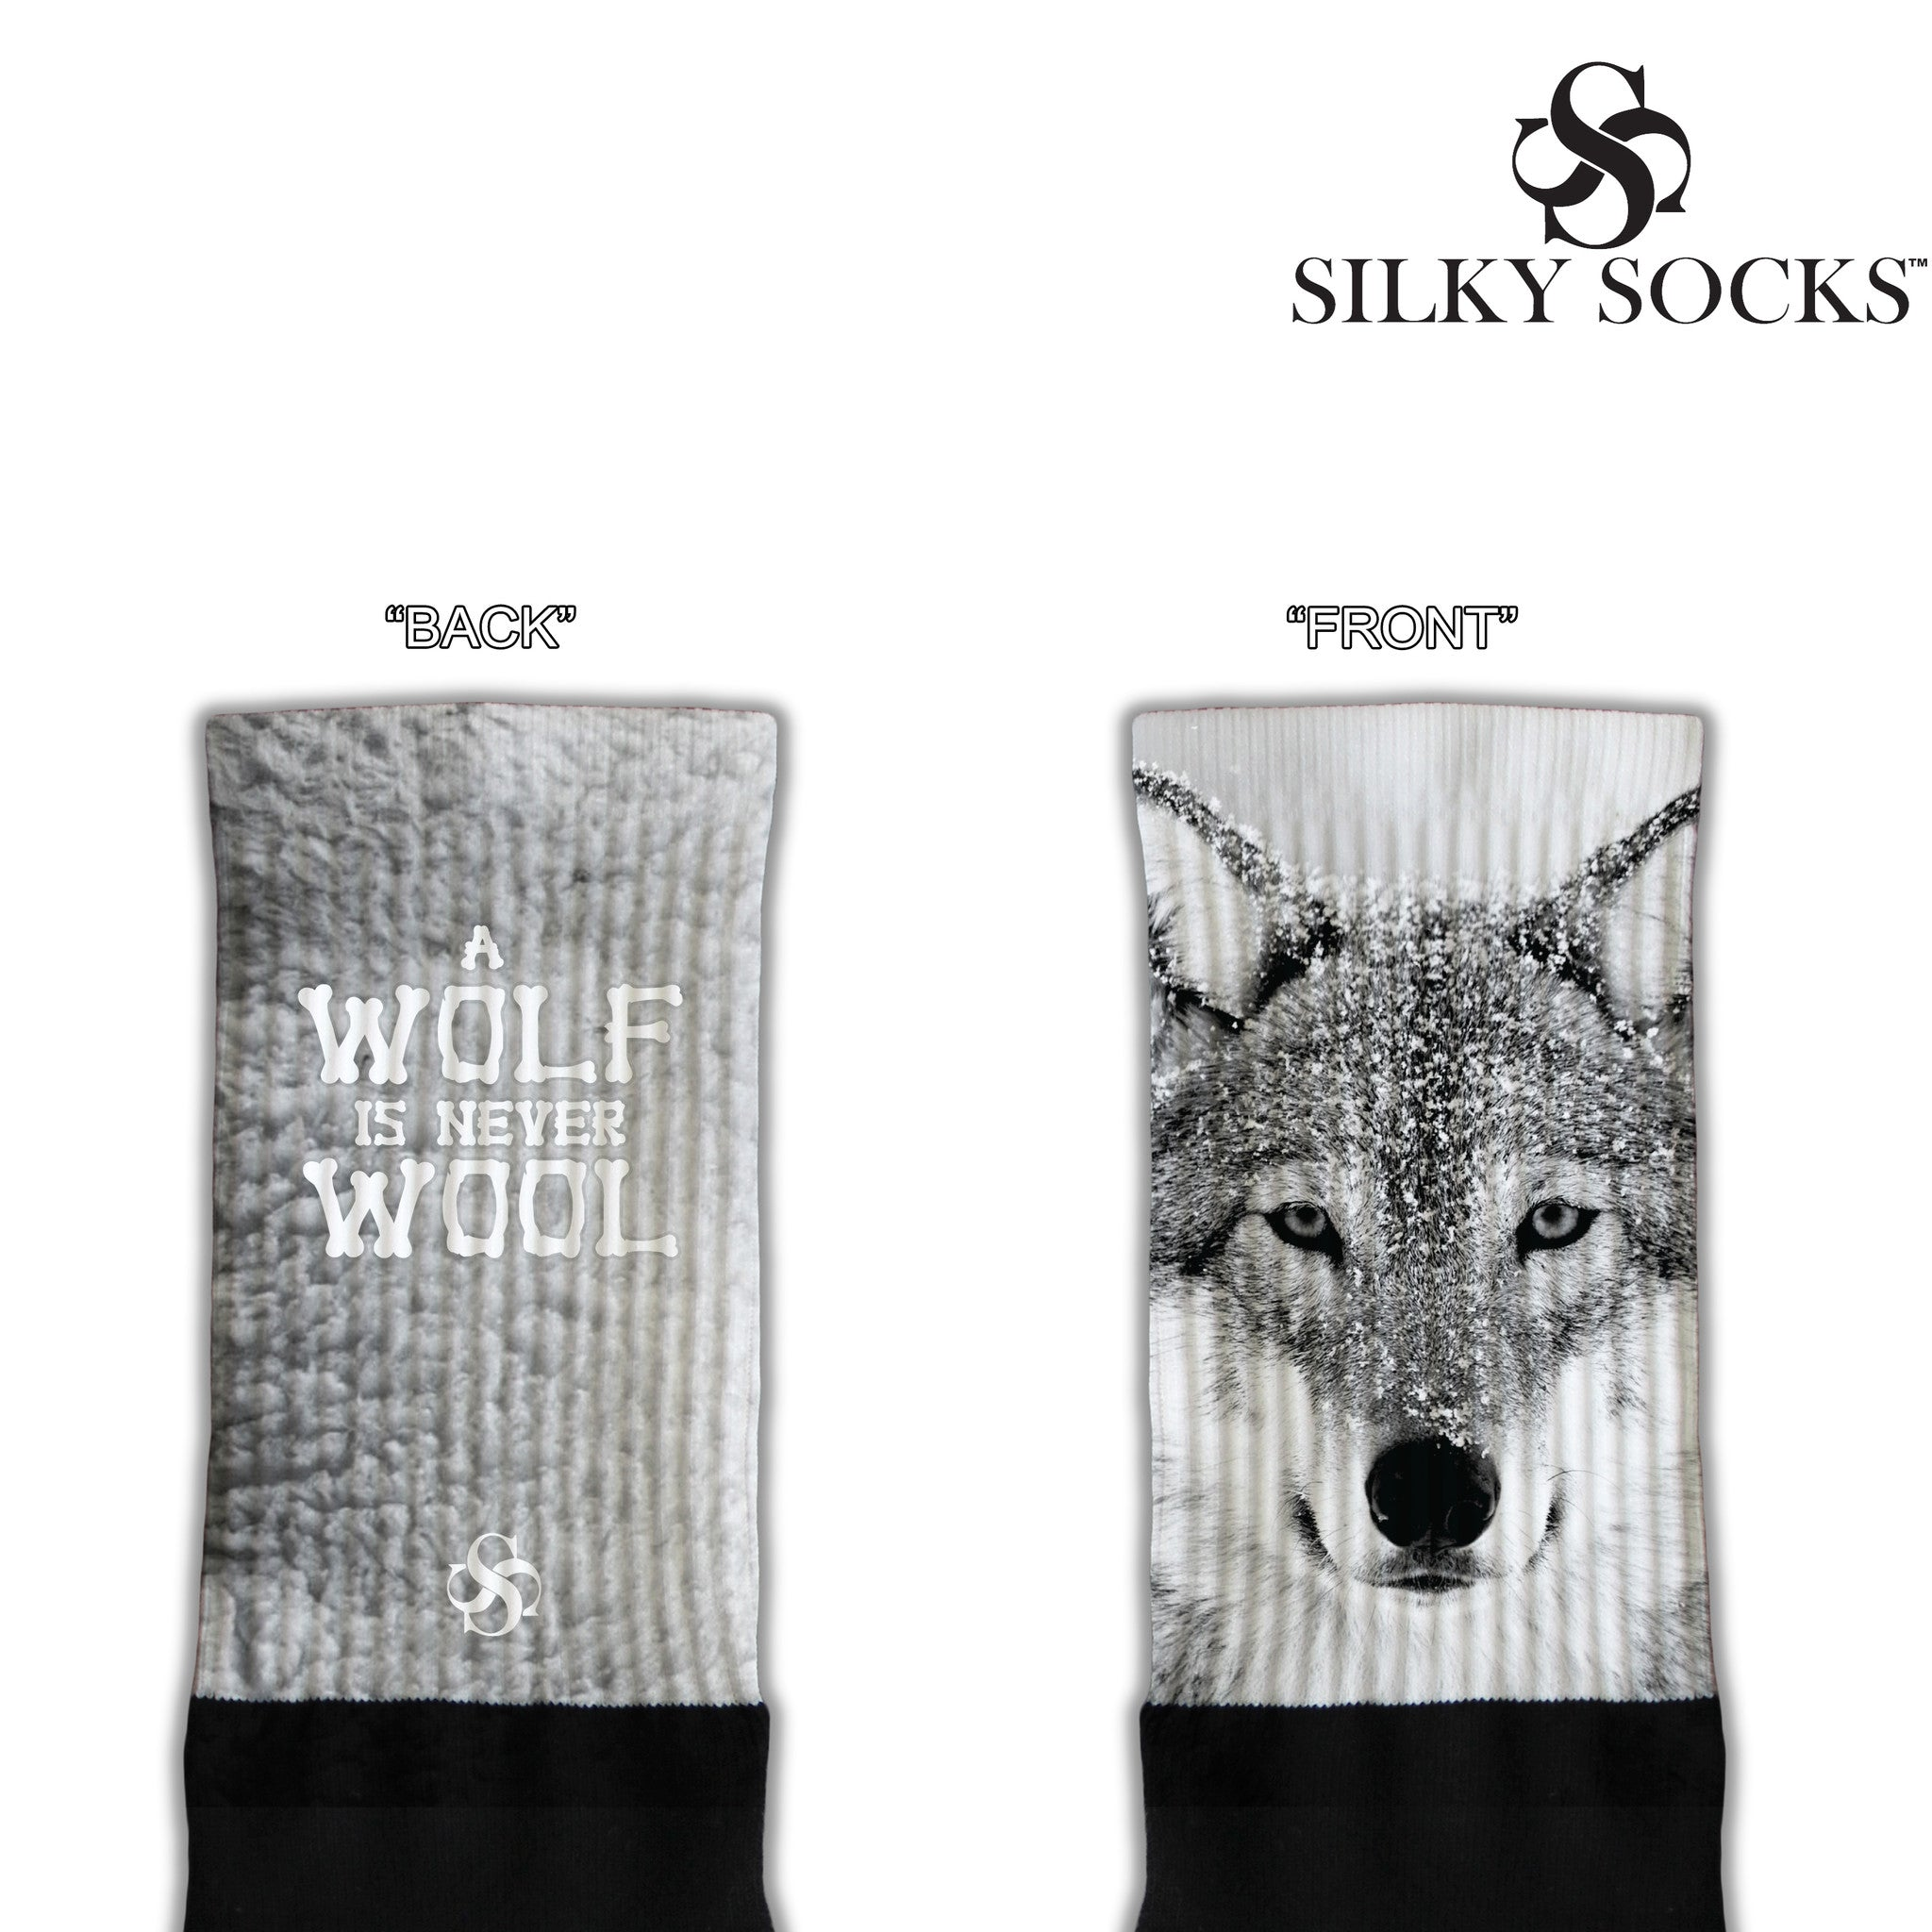 Air Jordan 3 Wolf Never Wool Custom Blackfoot Socks